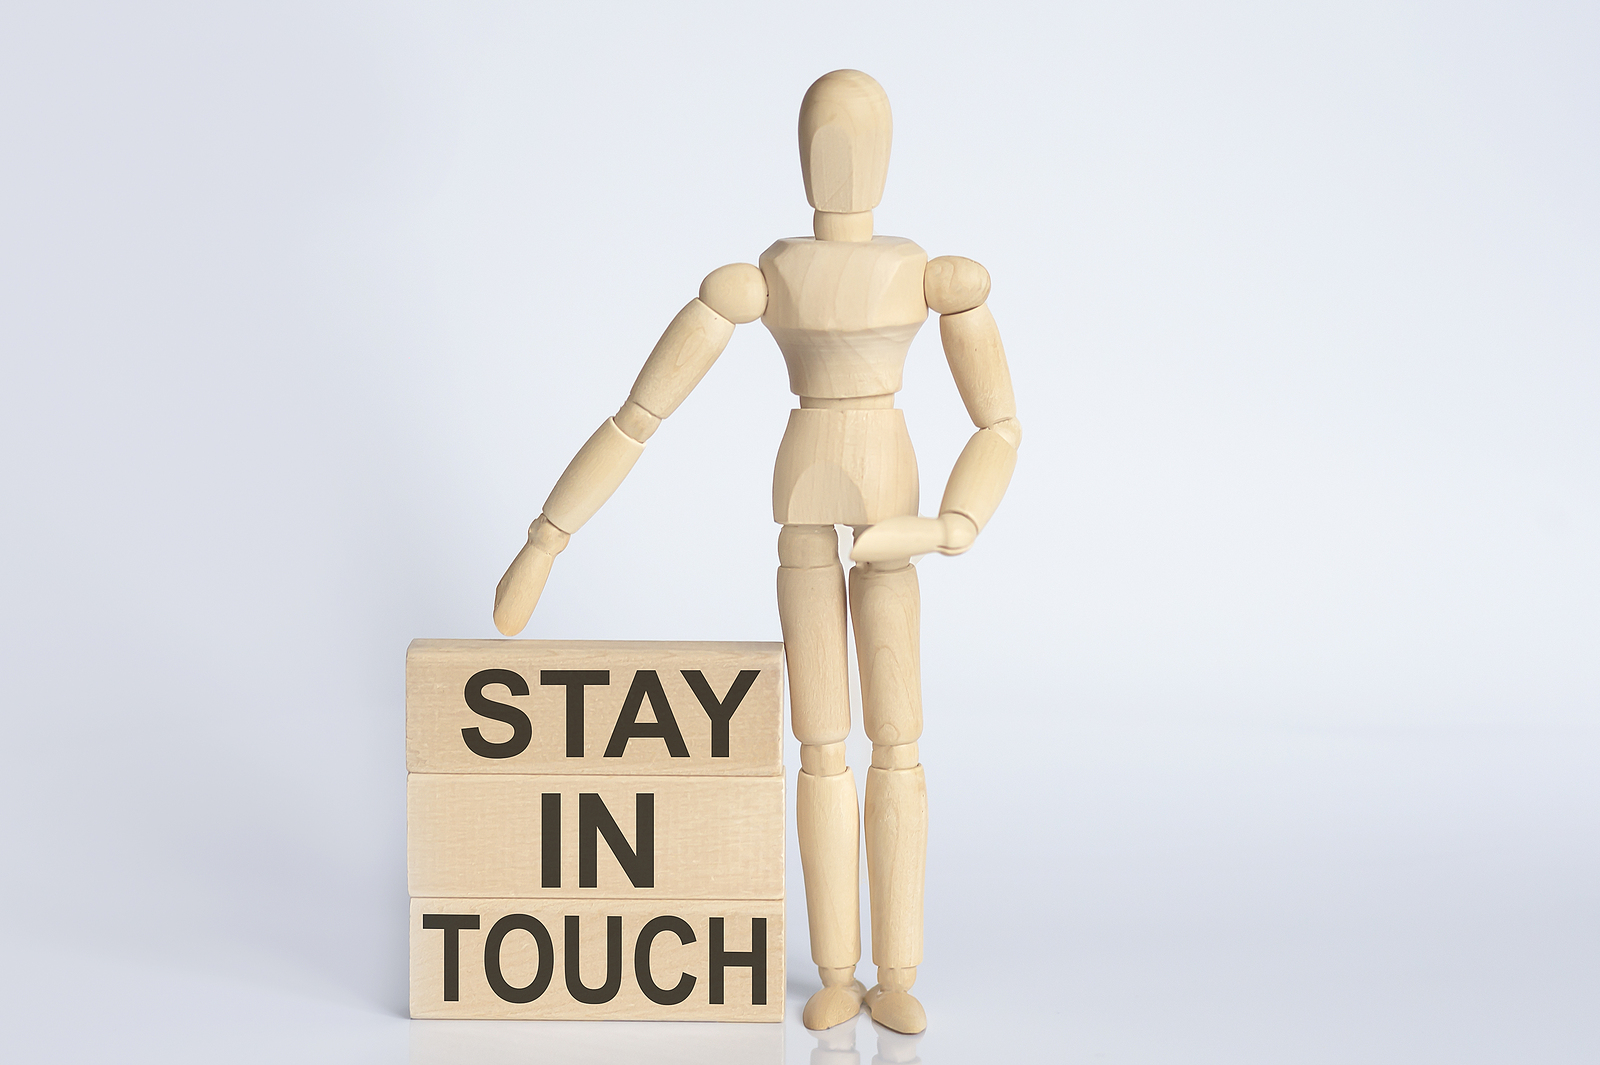 Wooden man shows with hand text Stay In Touch concept on wooden block